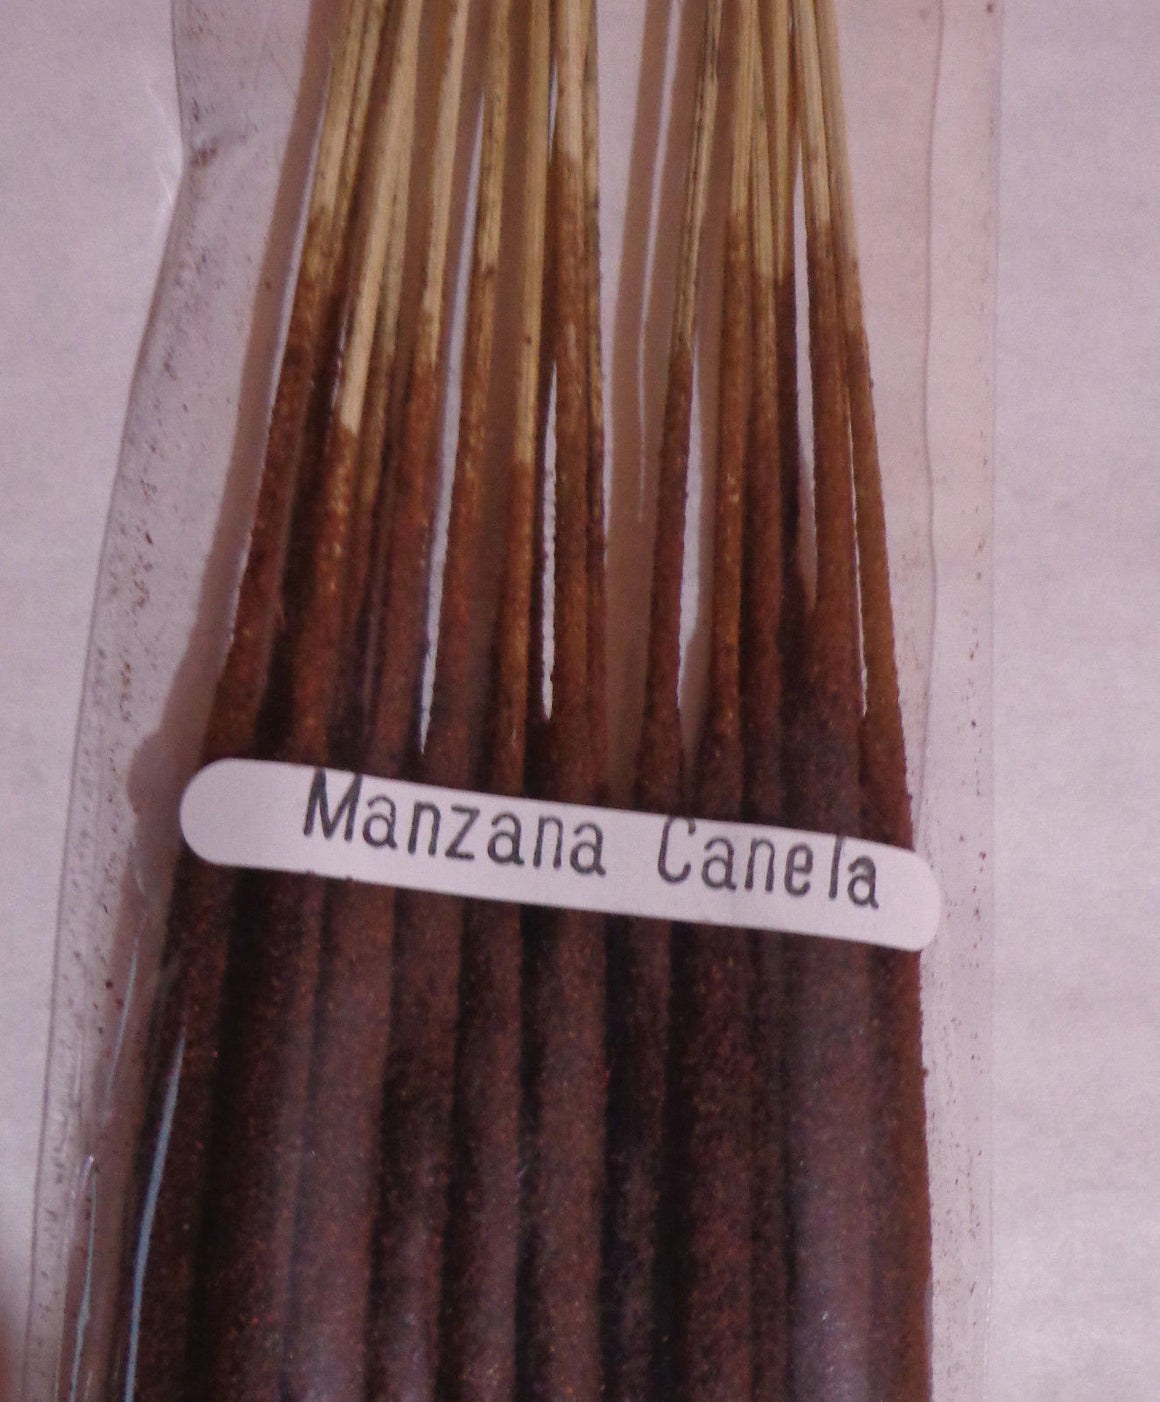 Incense Apple Cinnamon 20 Sticks from Mexico Long Duration 1.5 hours